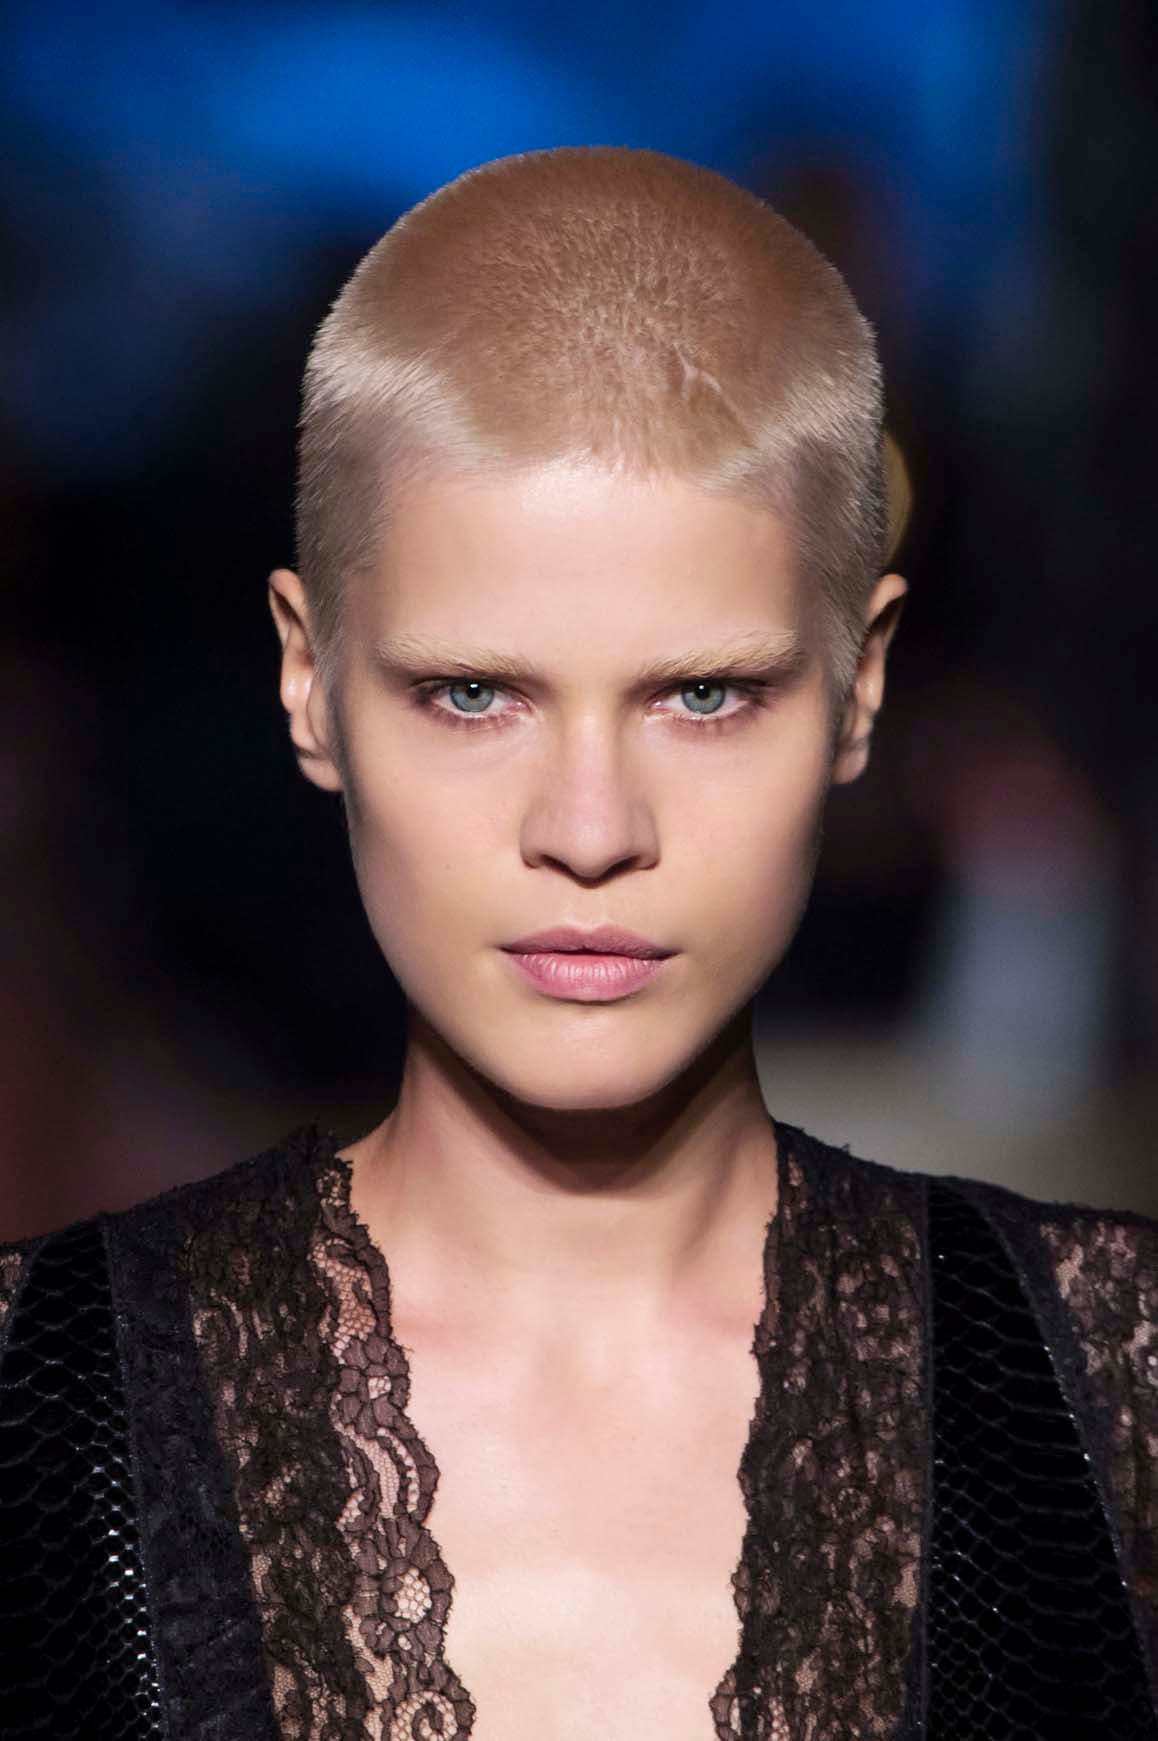 shaved hairstyles for women buzz cut style on runway model